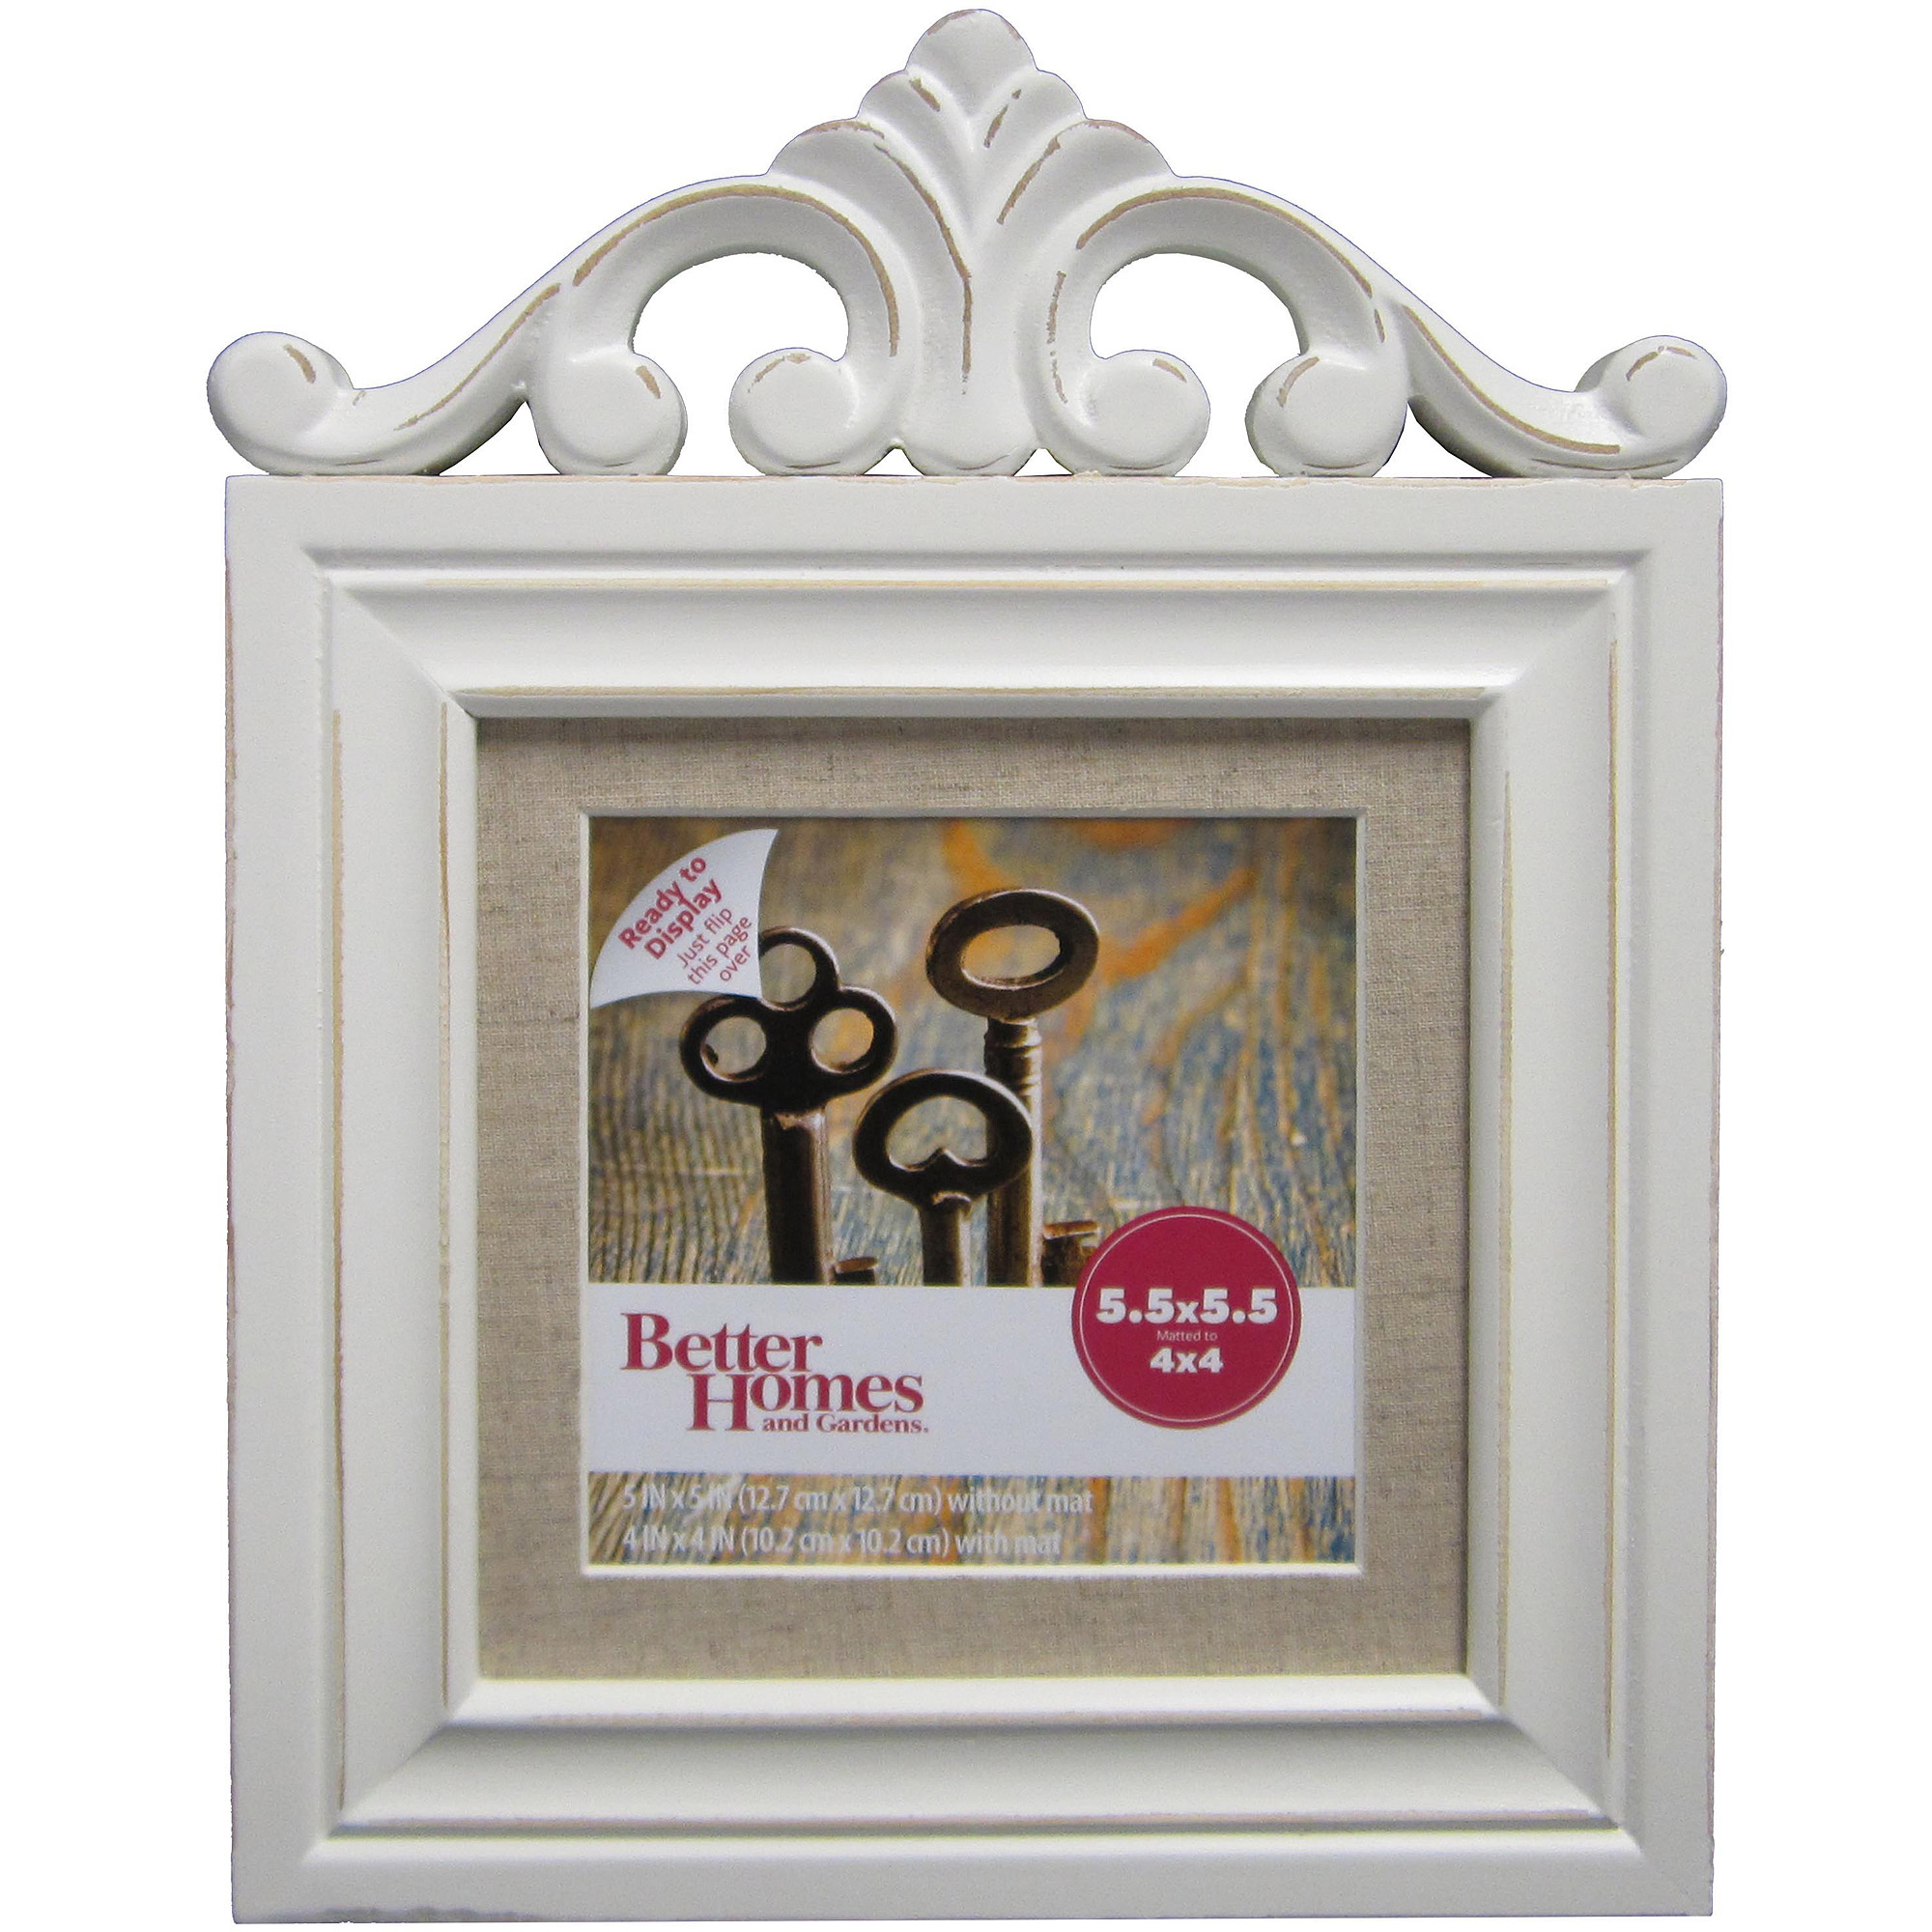 better homes and gardens 5x5 frame with cornice embellishment distressed white walmartcom